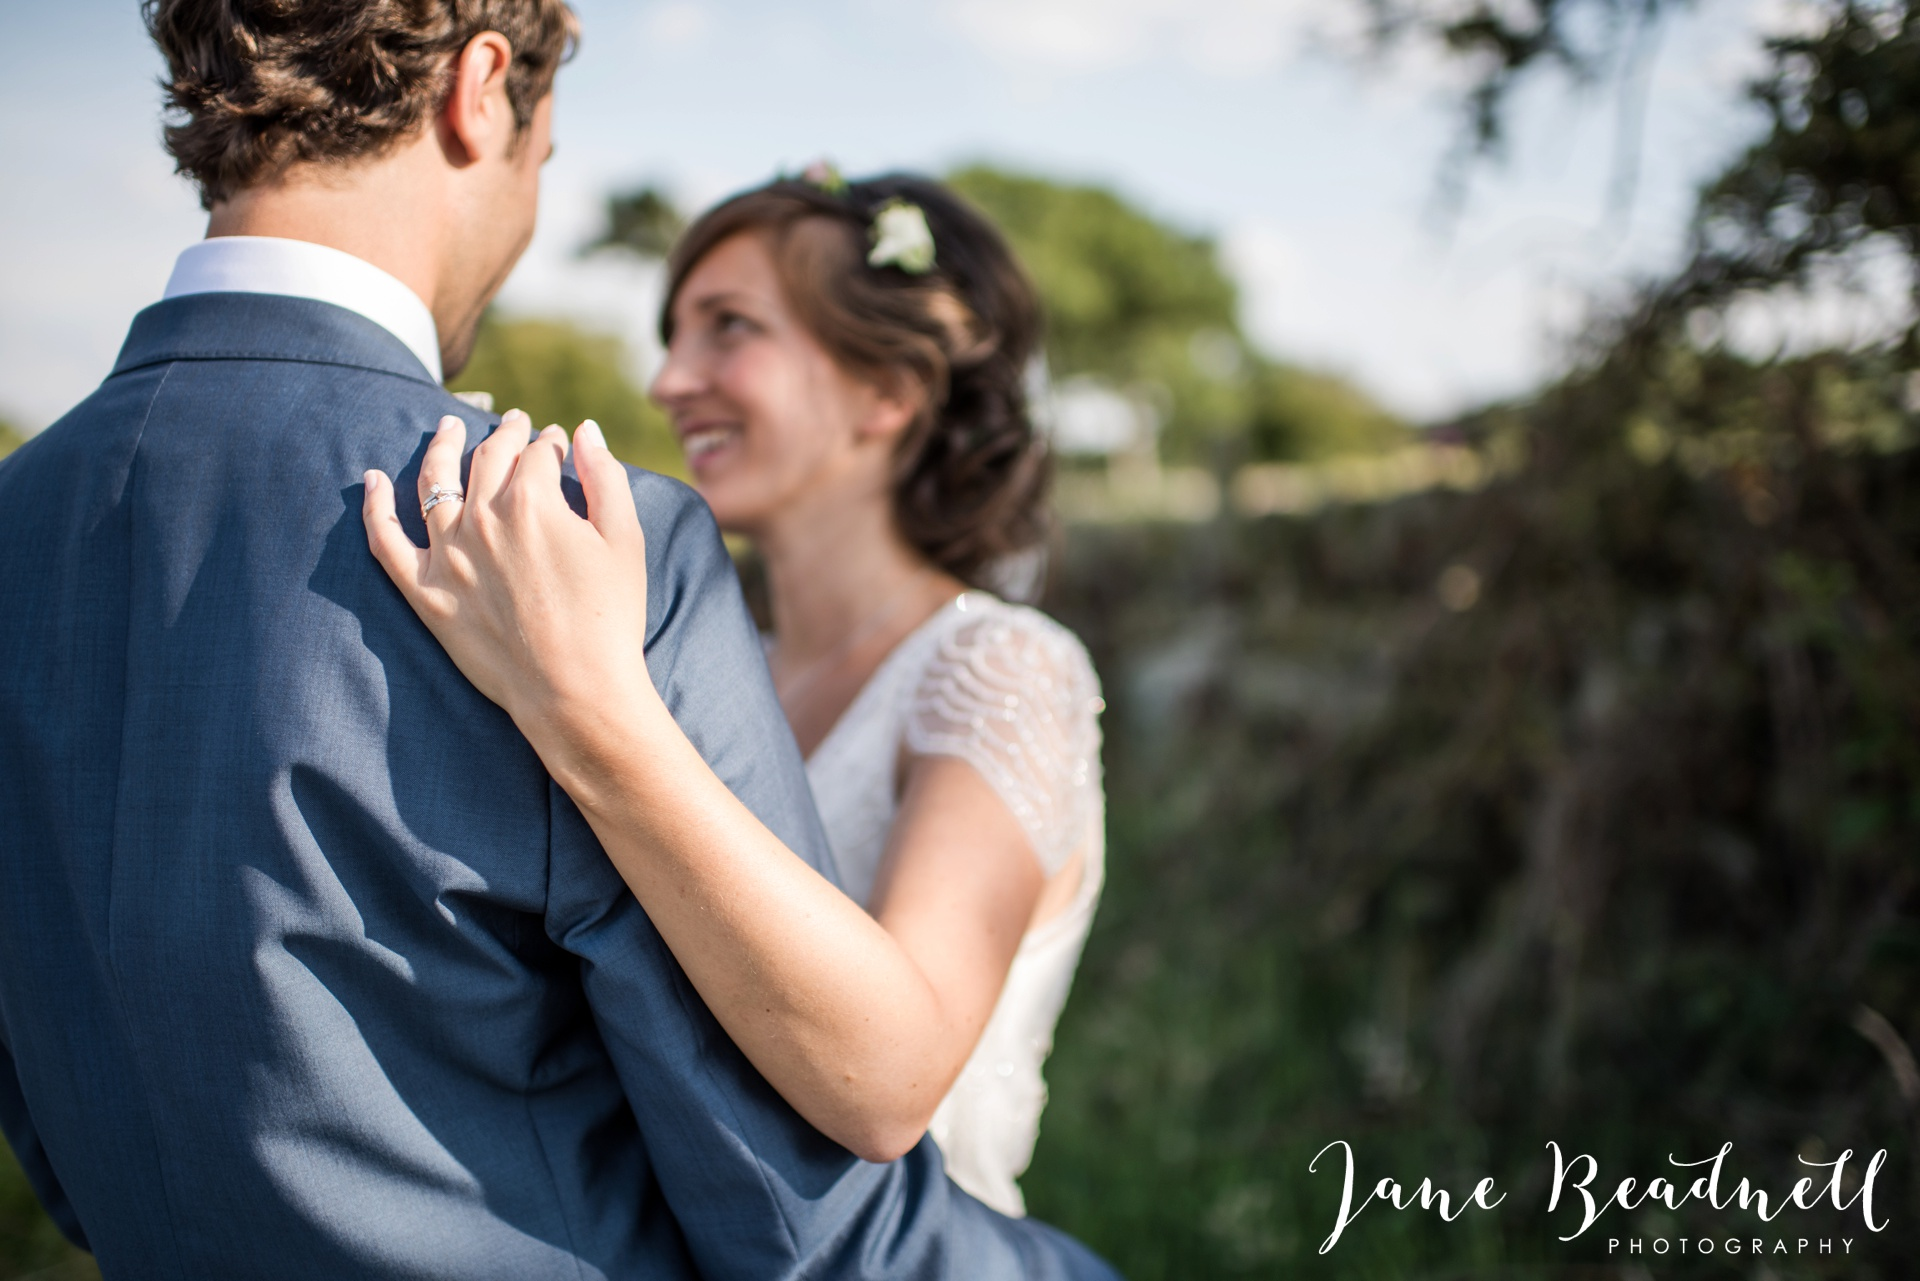 Jane Beadnell fine art wedding photographer Leeds_0085